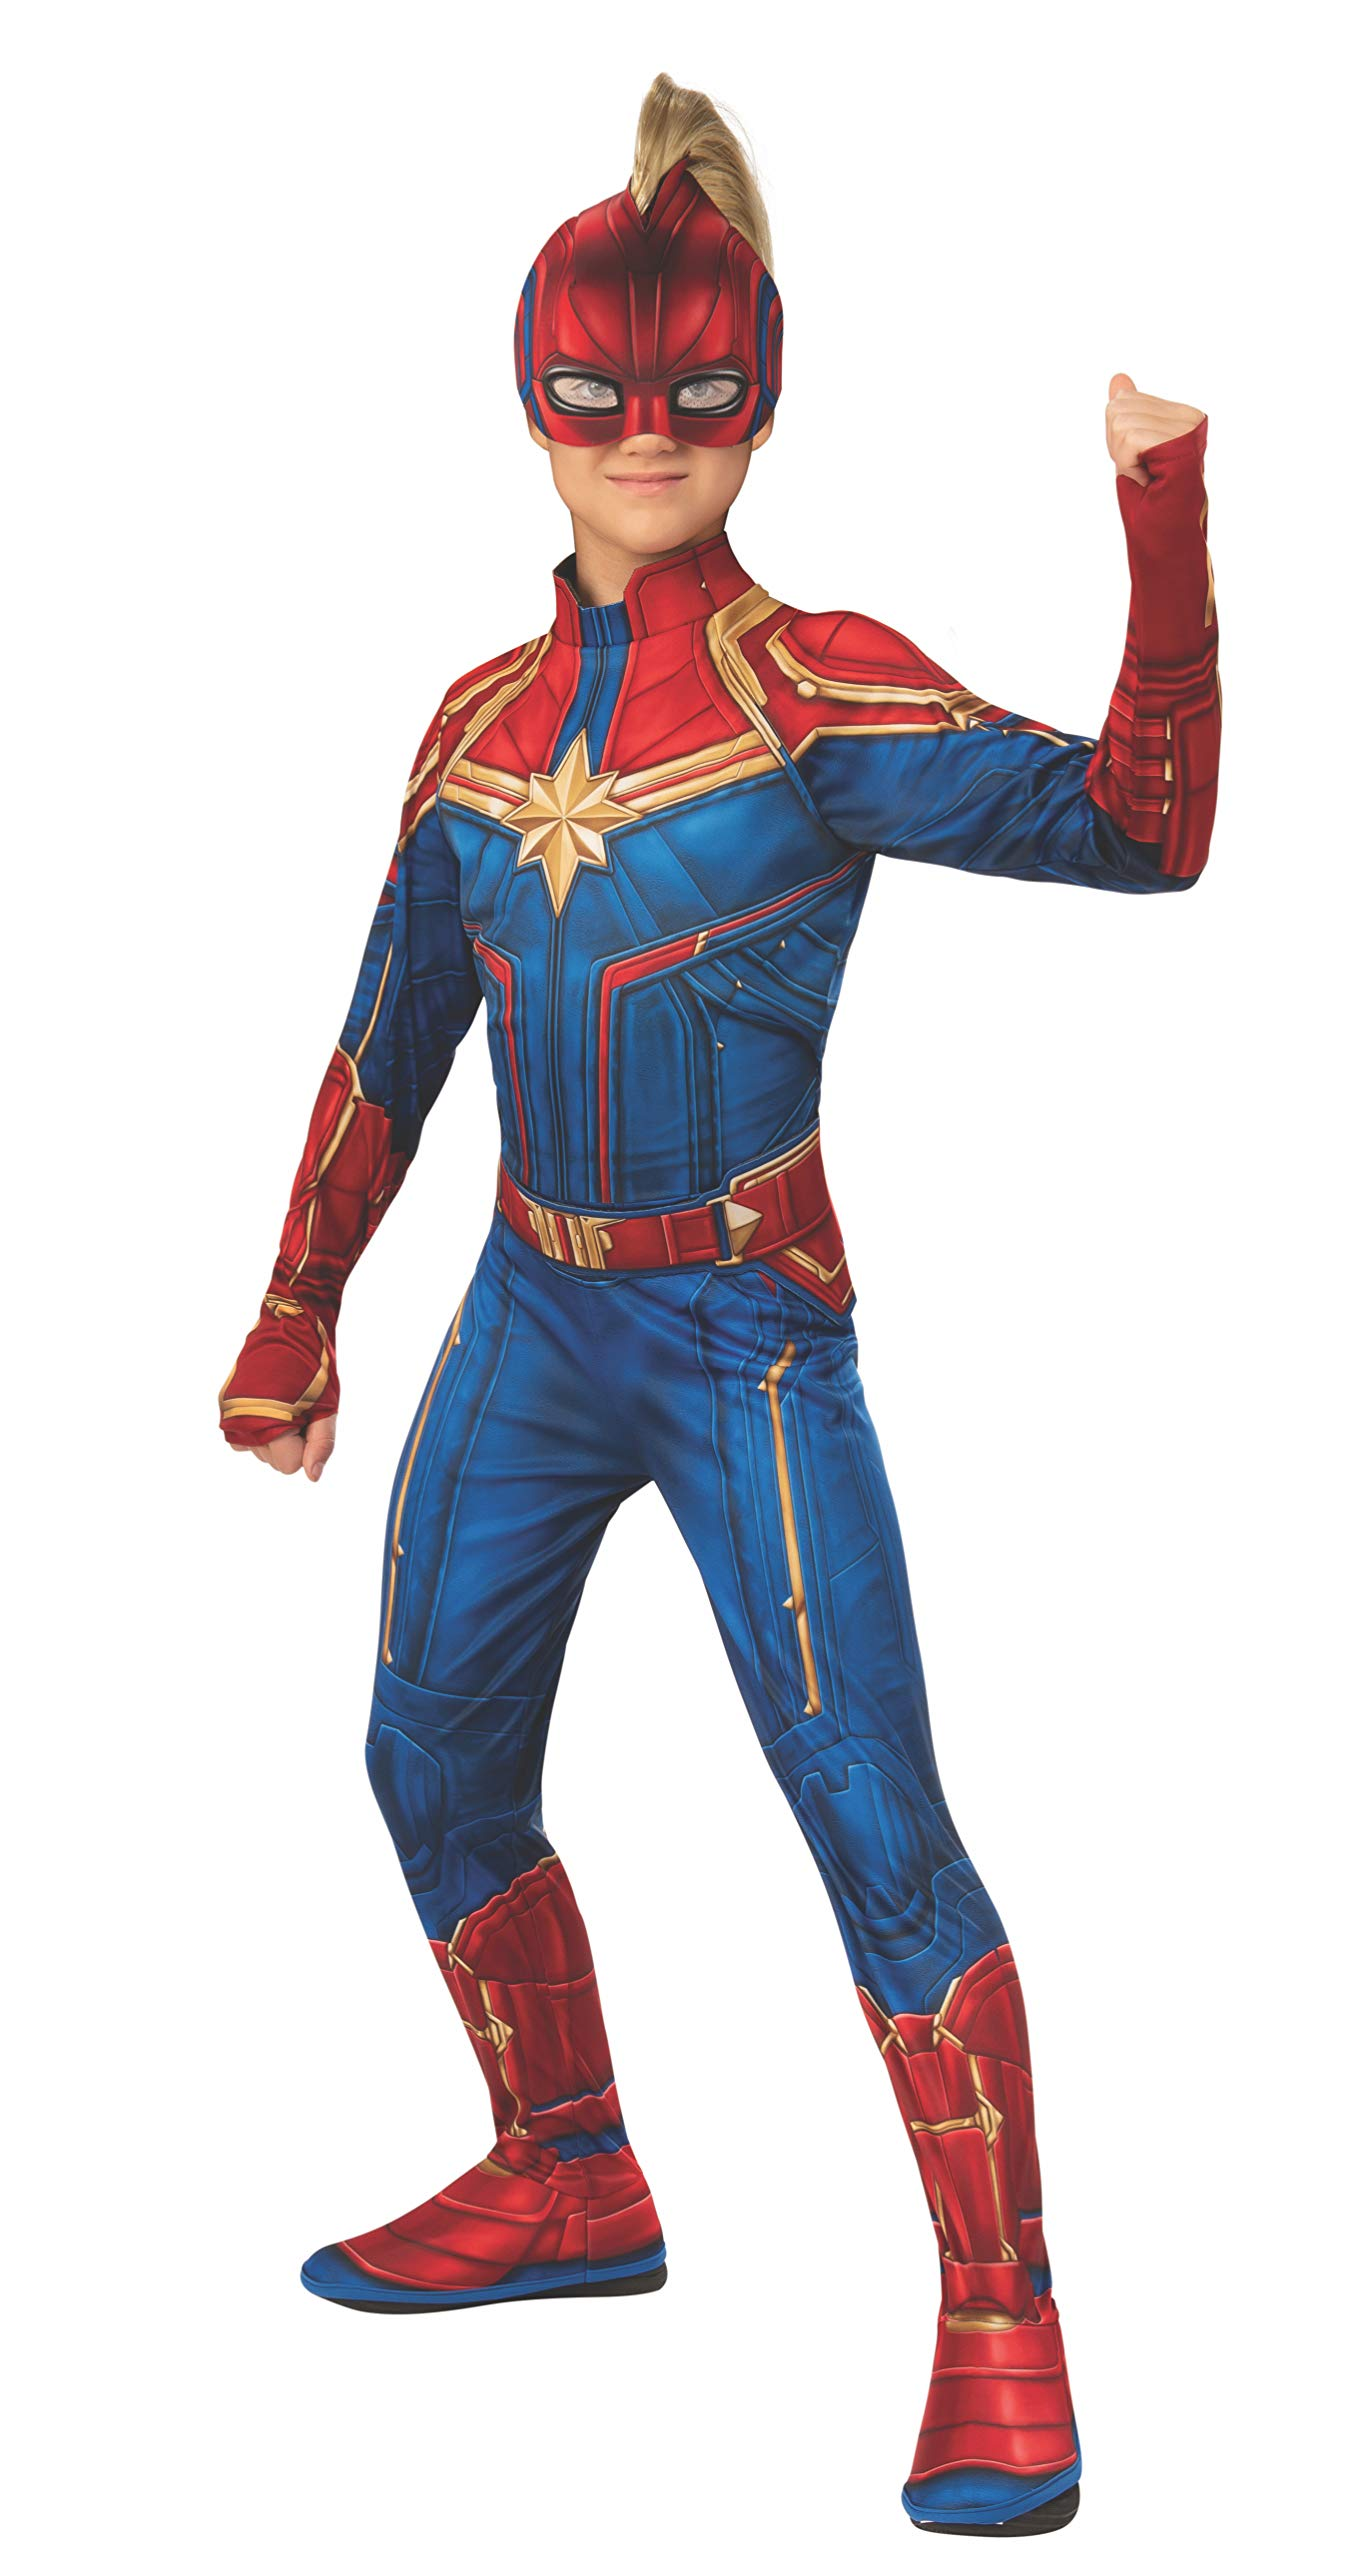 Halloween Avengers Captain Marvel Hero Suit Child Costume Walmart Com Walmart Com About 3% of these are tv & movie costumes, 0% are women's trousers & pants, and 0% are zentai / catsuit. halloween avengers captain marvel hero suit child costume